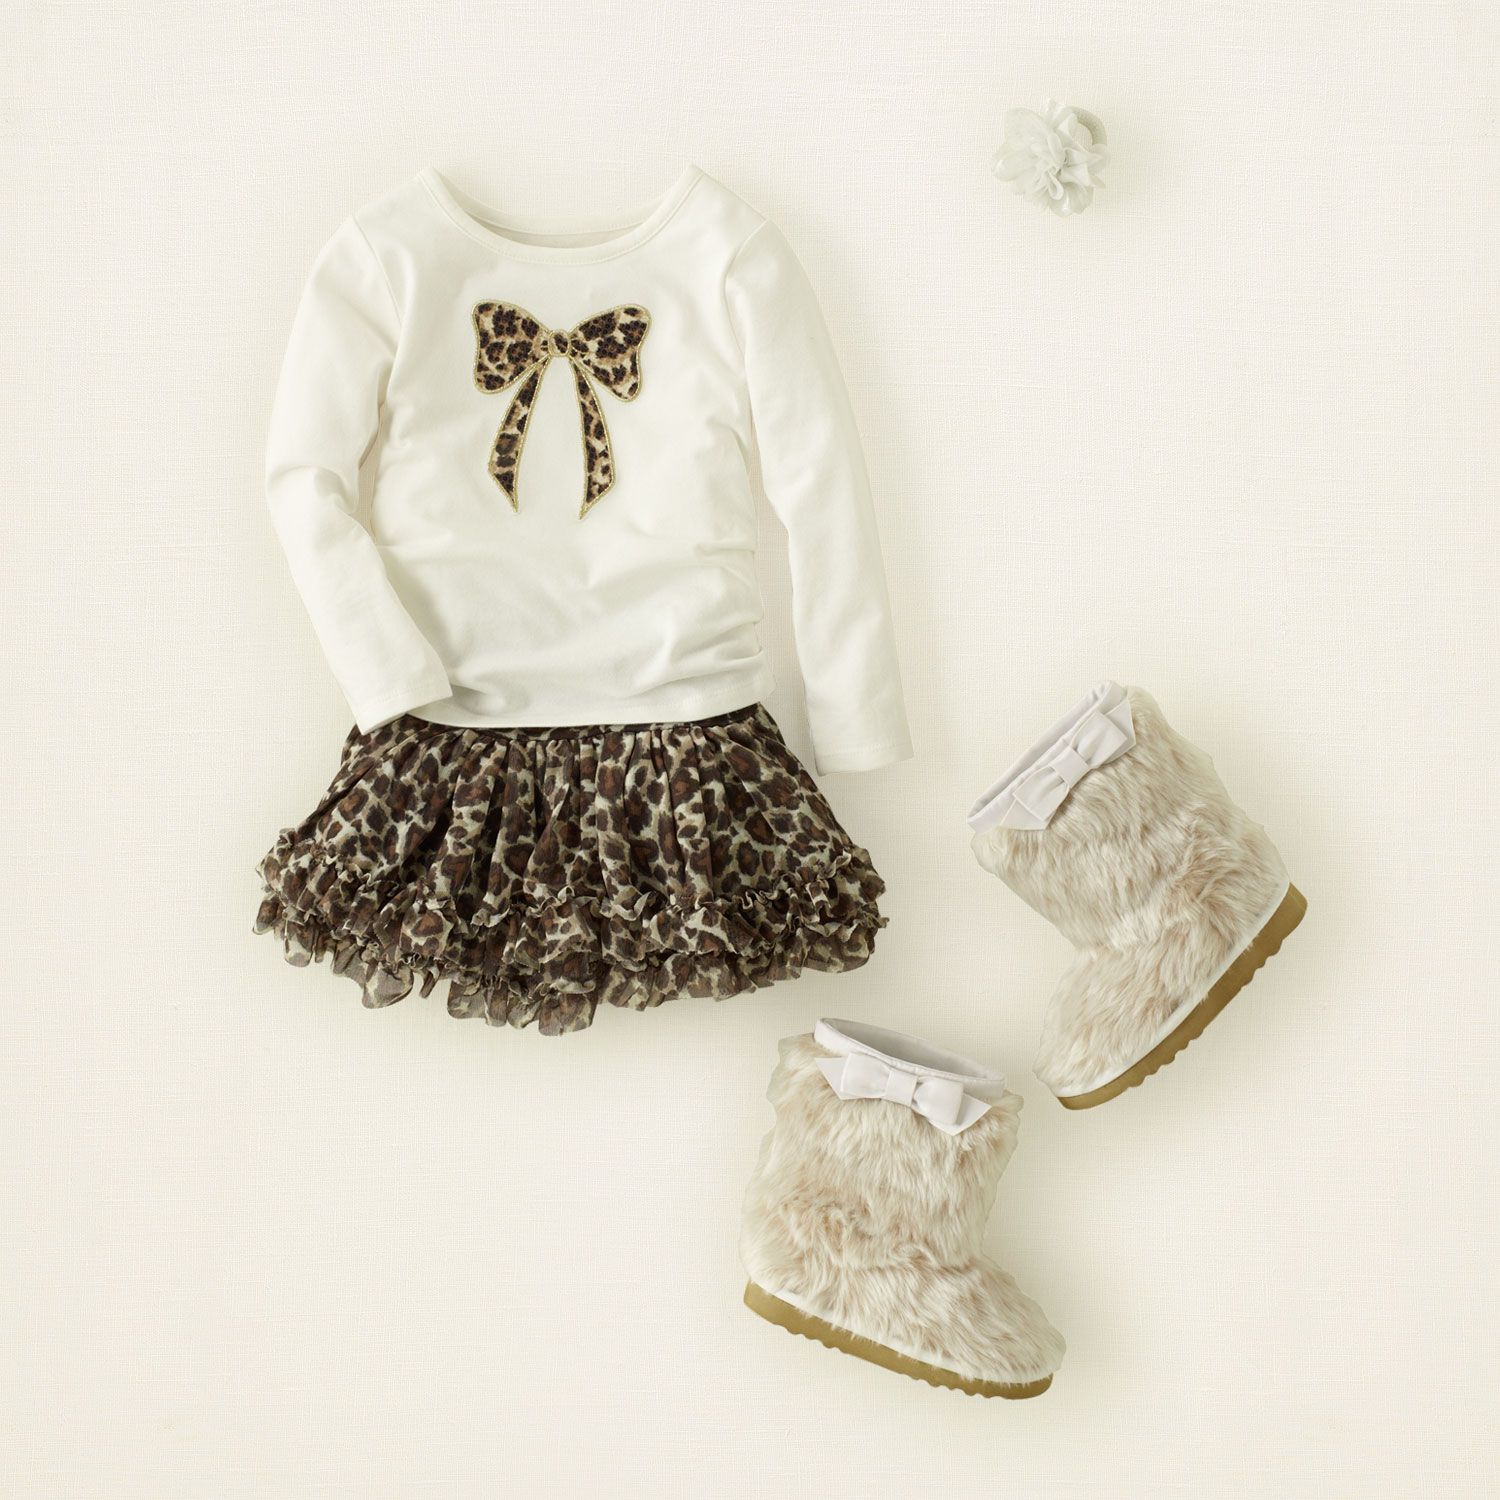 b45443115a329 baby girl - outfits - kitty cream